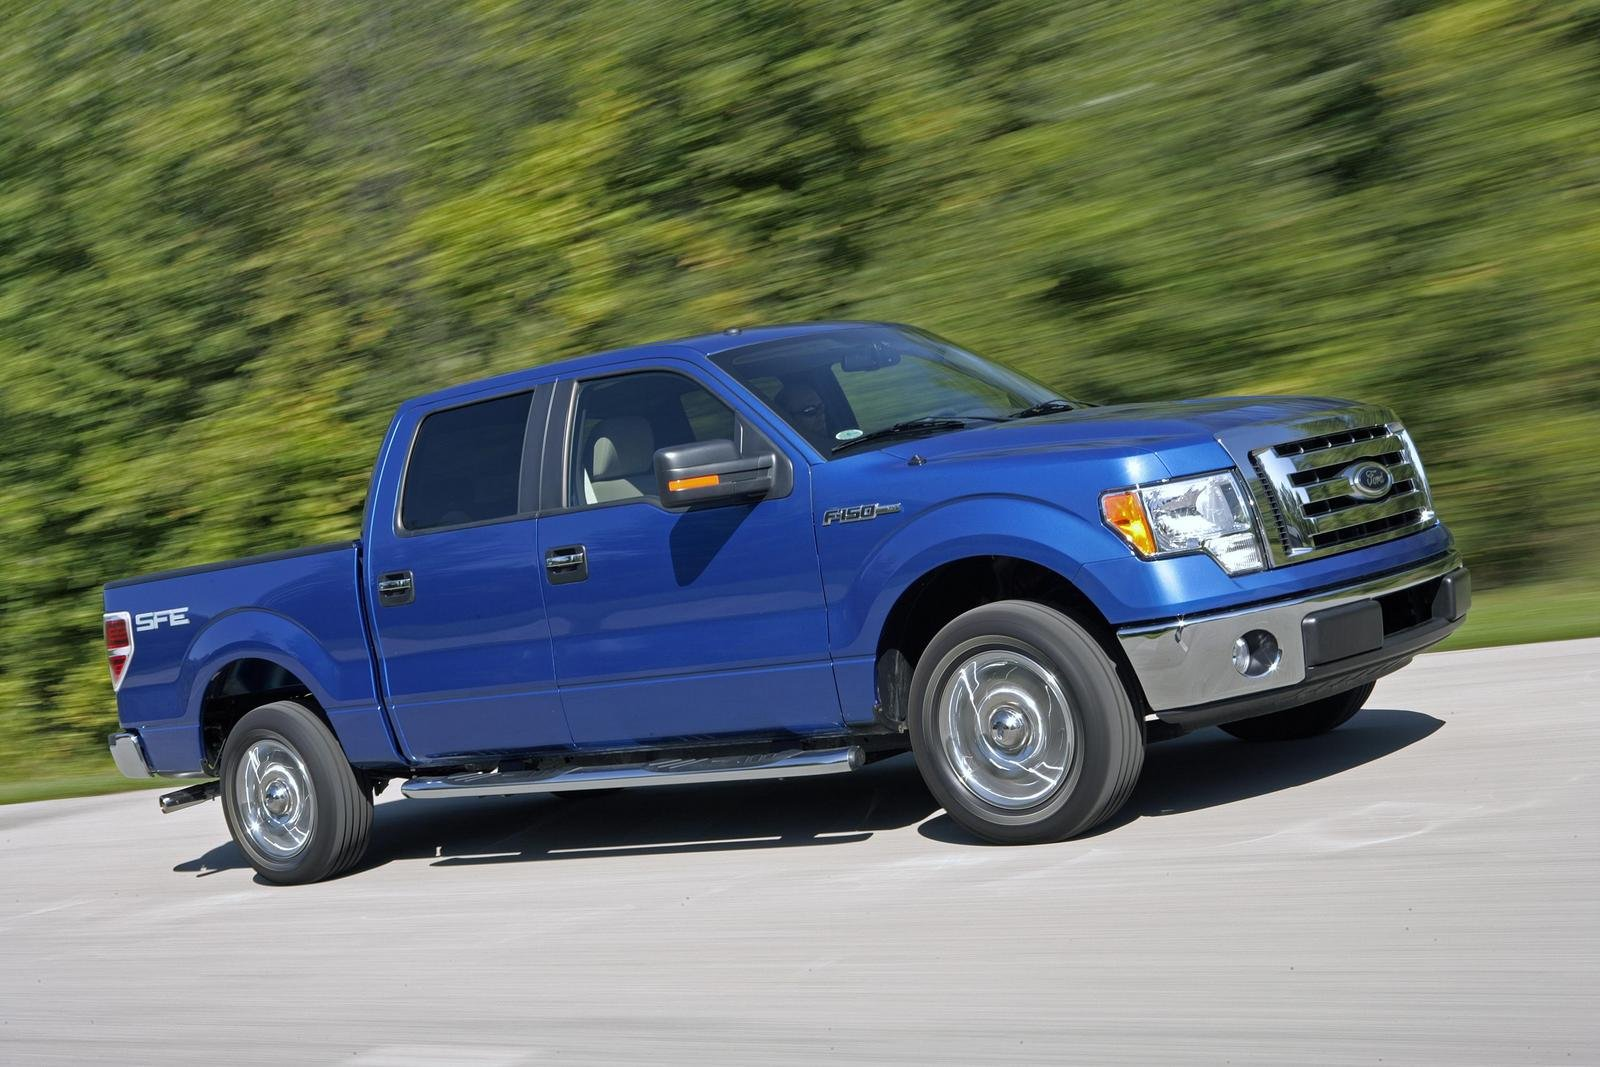 2009 ford f150 on sale in october fuel economy improved by 8 picture 264304 car news top. Black Bedroom Furniture Sets. Home Design Ideas